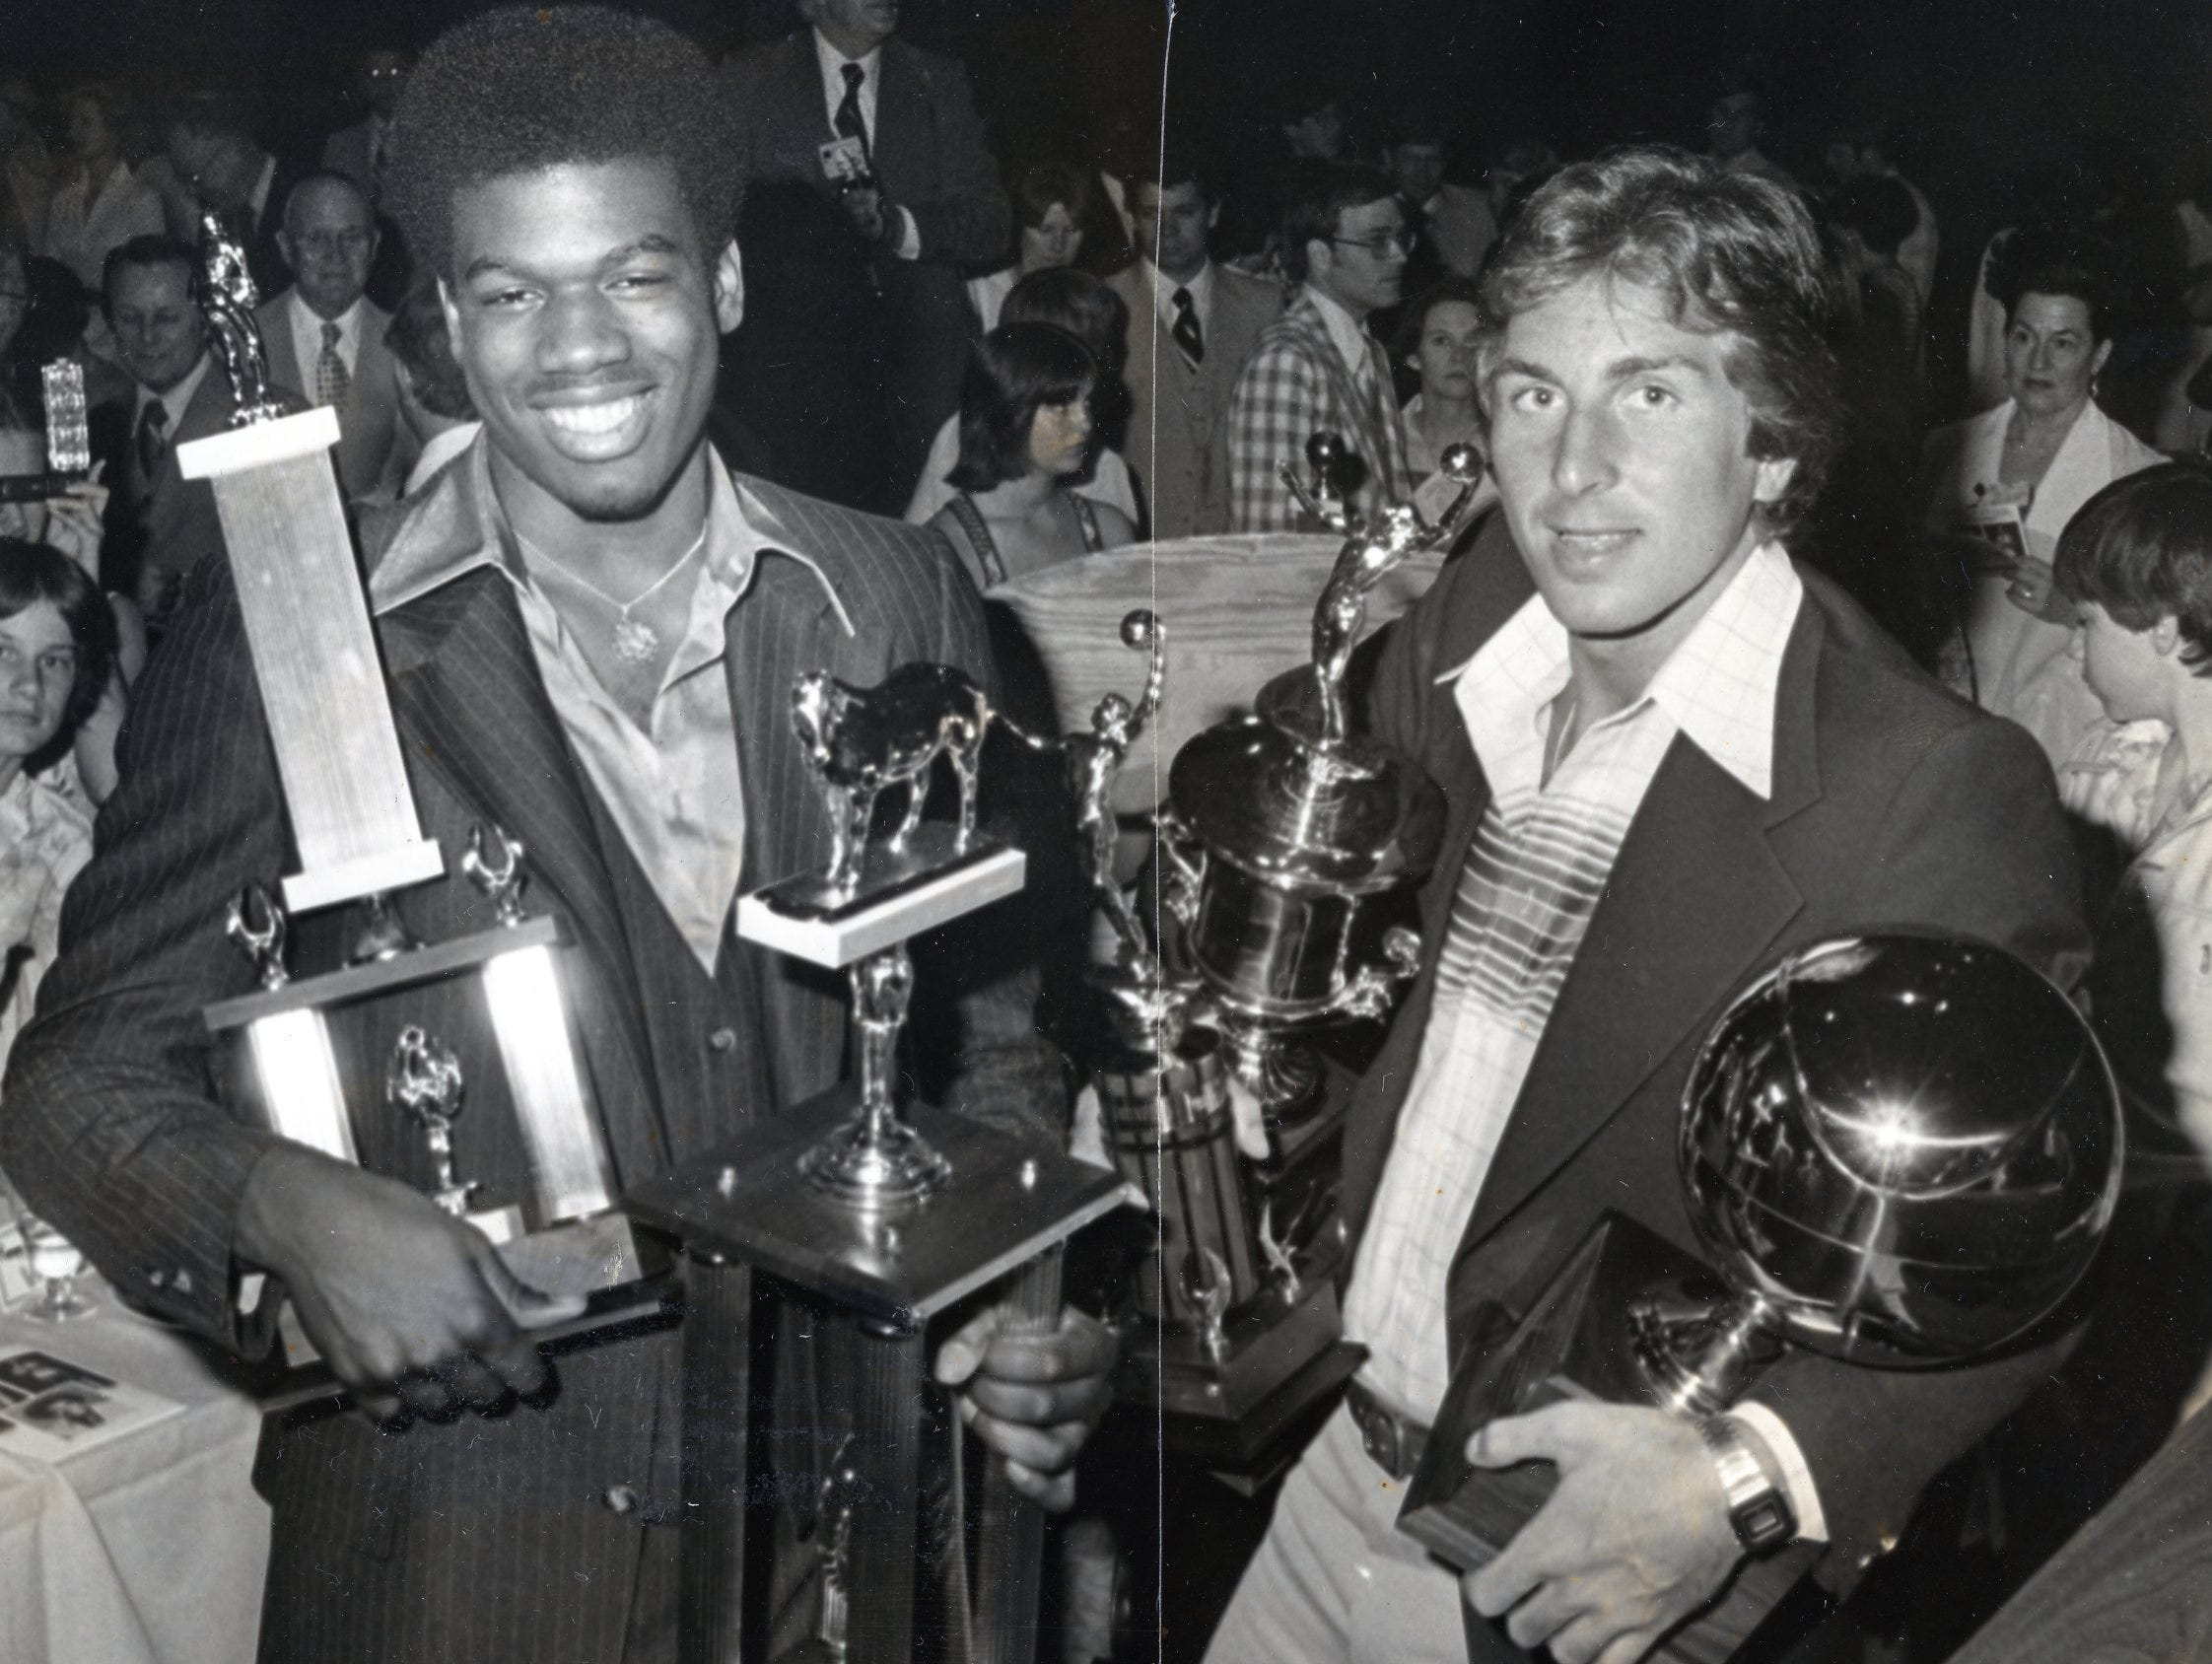 Bernard King and Ernie Grunfeld hold their awards earned while playing basketball at The University of Tennessee.